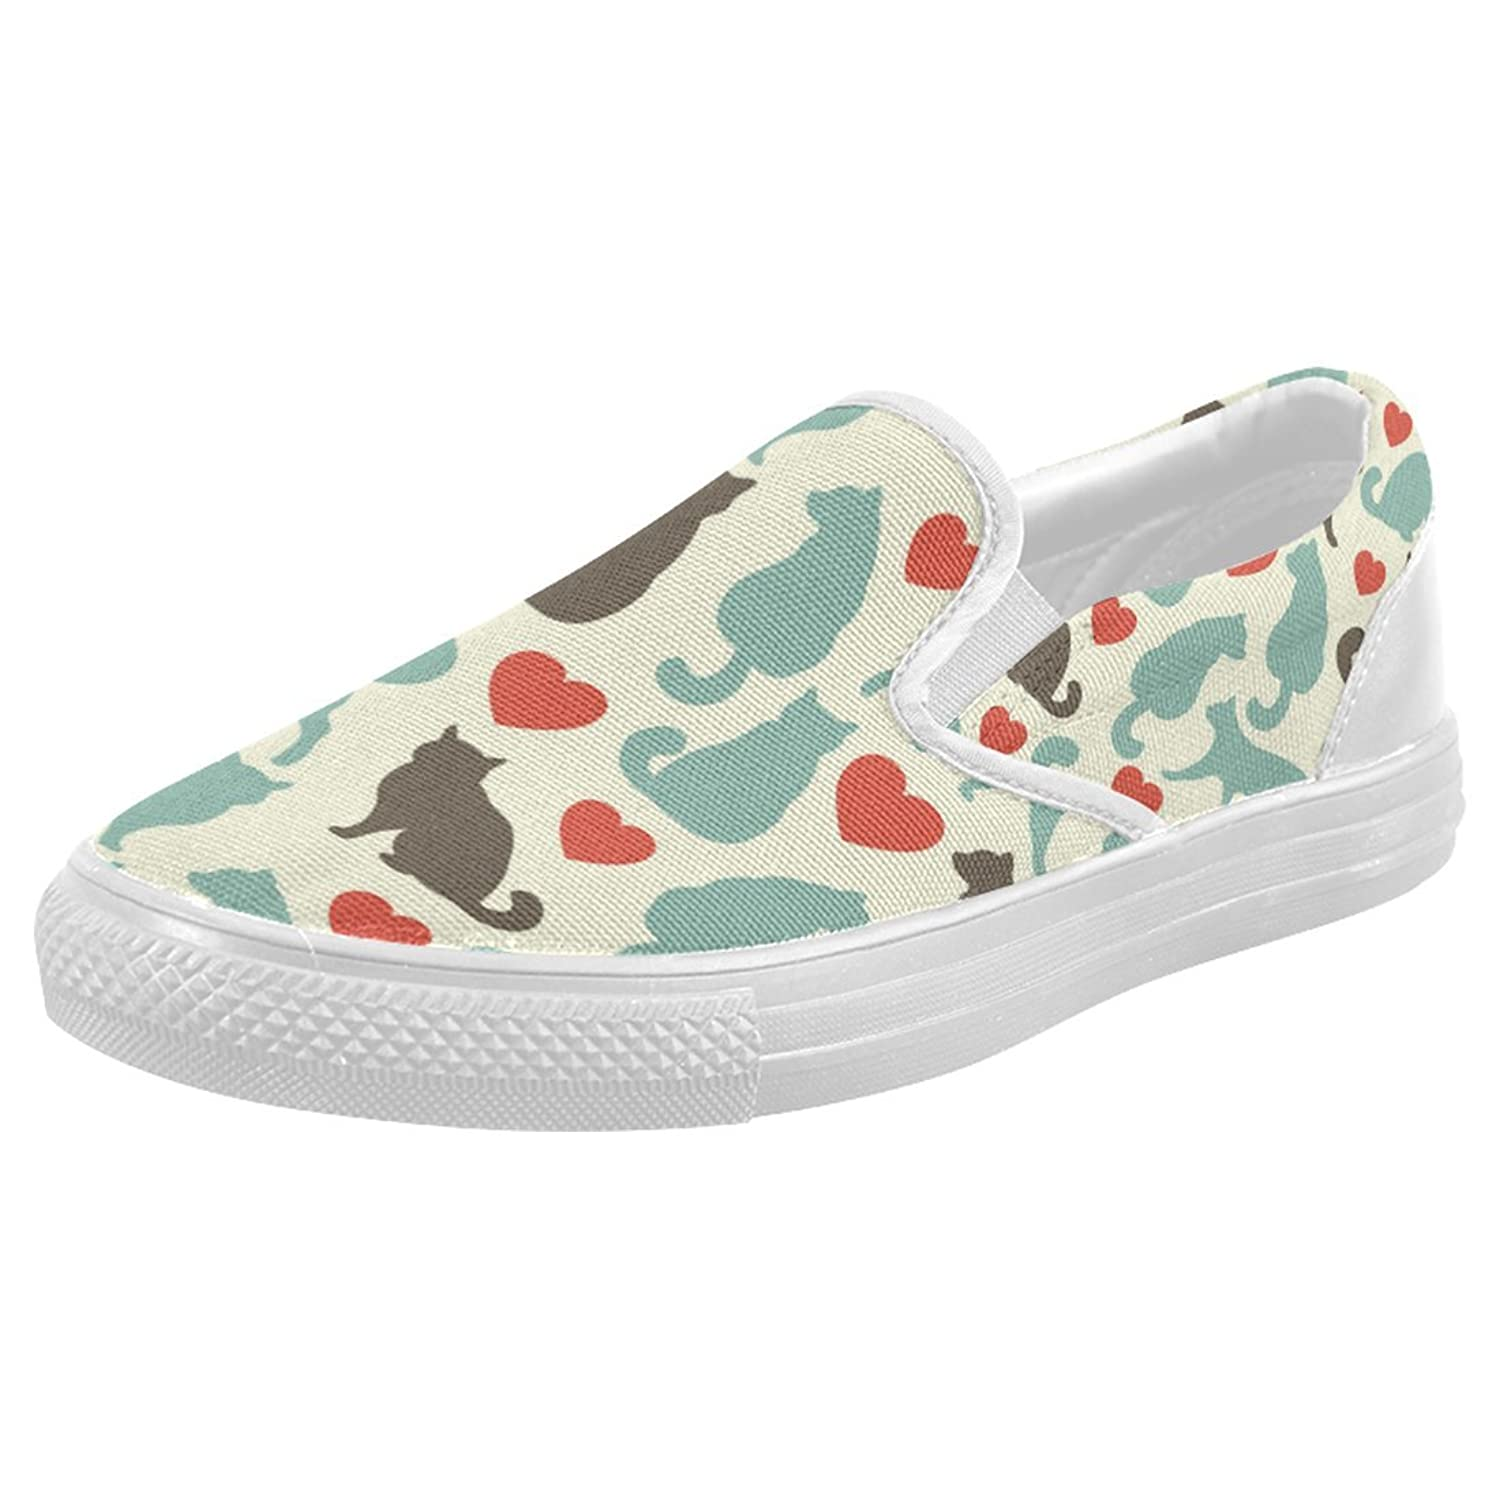 InterestPrint Cute Cat Casual Slip-on Canvas Women's Fashion Sneakers Shoes